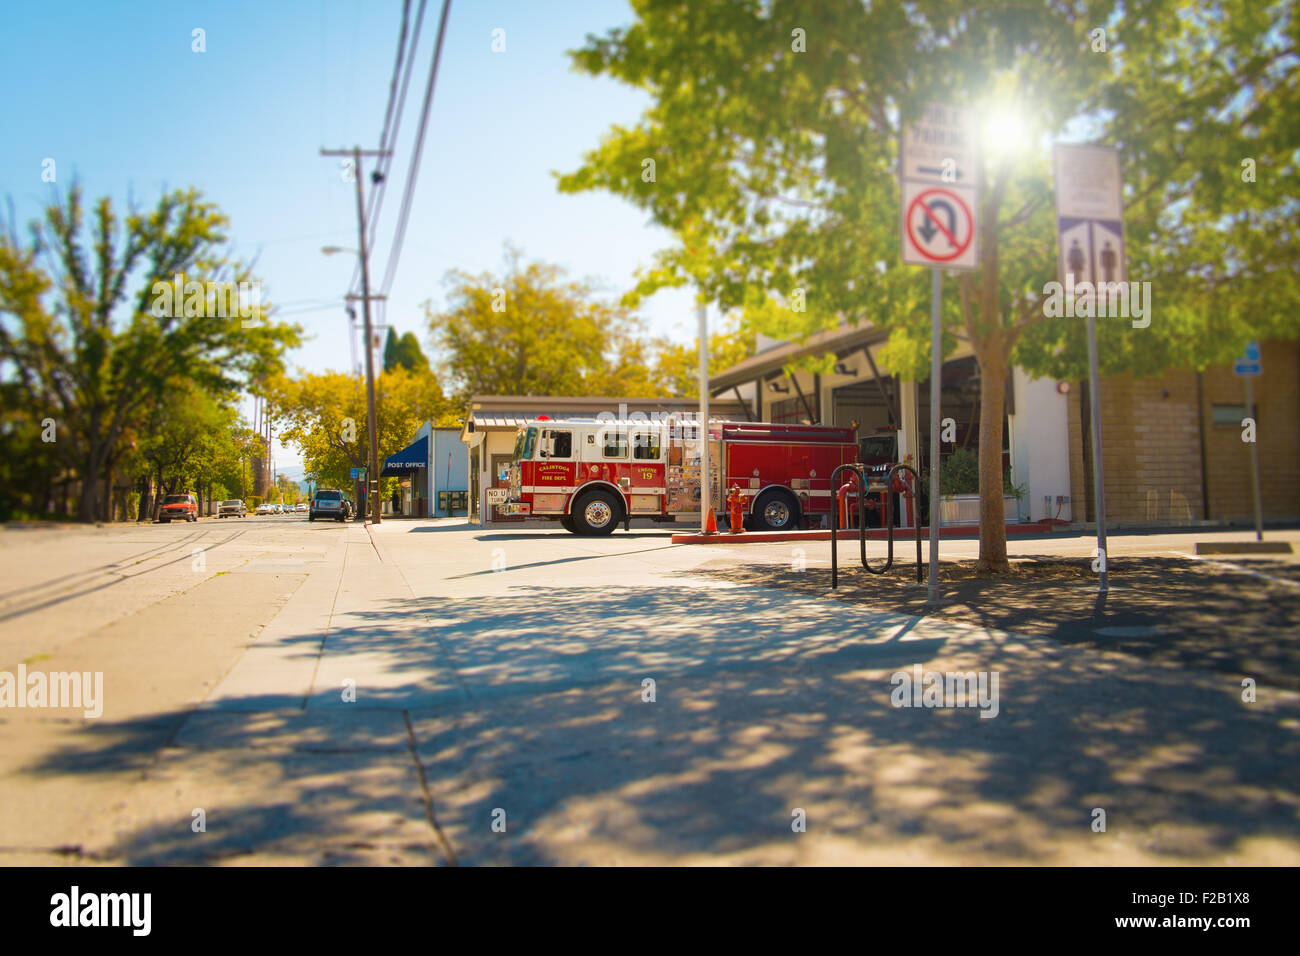 Fire Engine outside Fire station in town in California Stock Photo